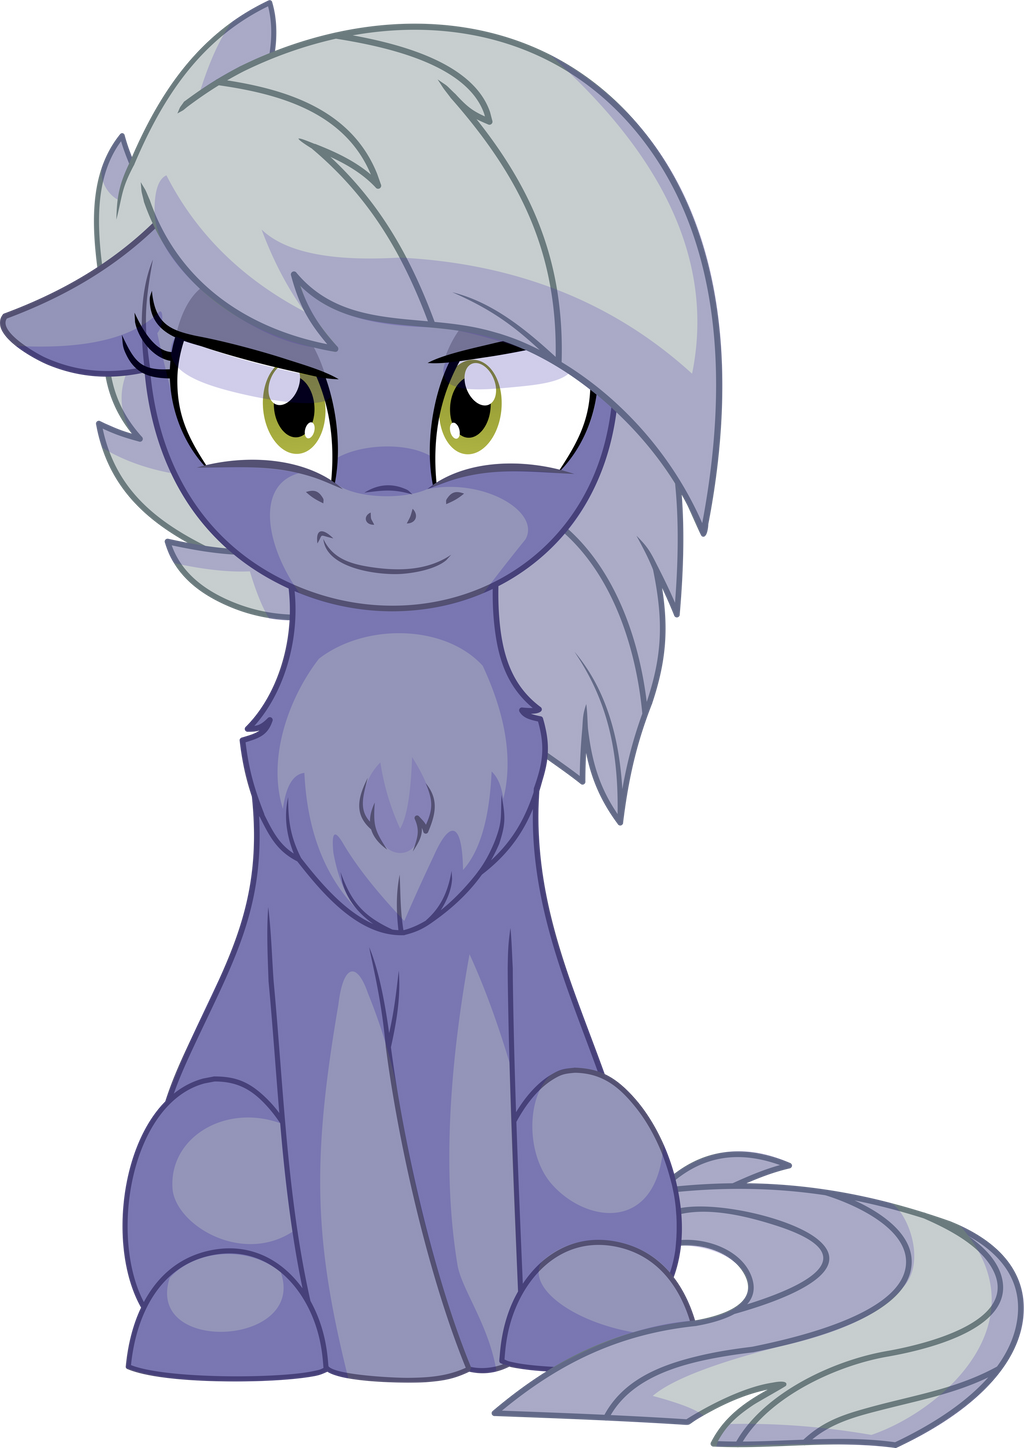 [Obrázek: limestone_pie_vector_01___face_of_mercy_...llview.png]